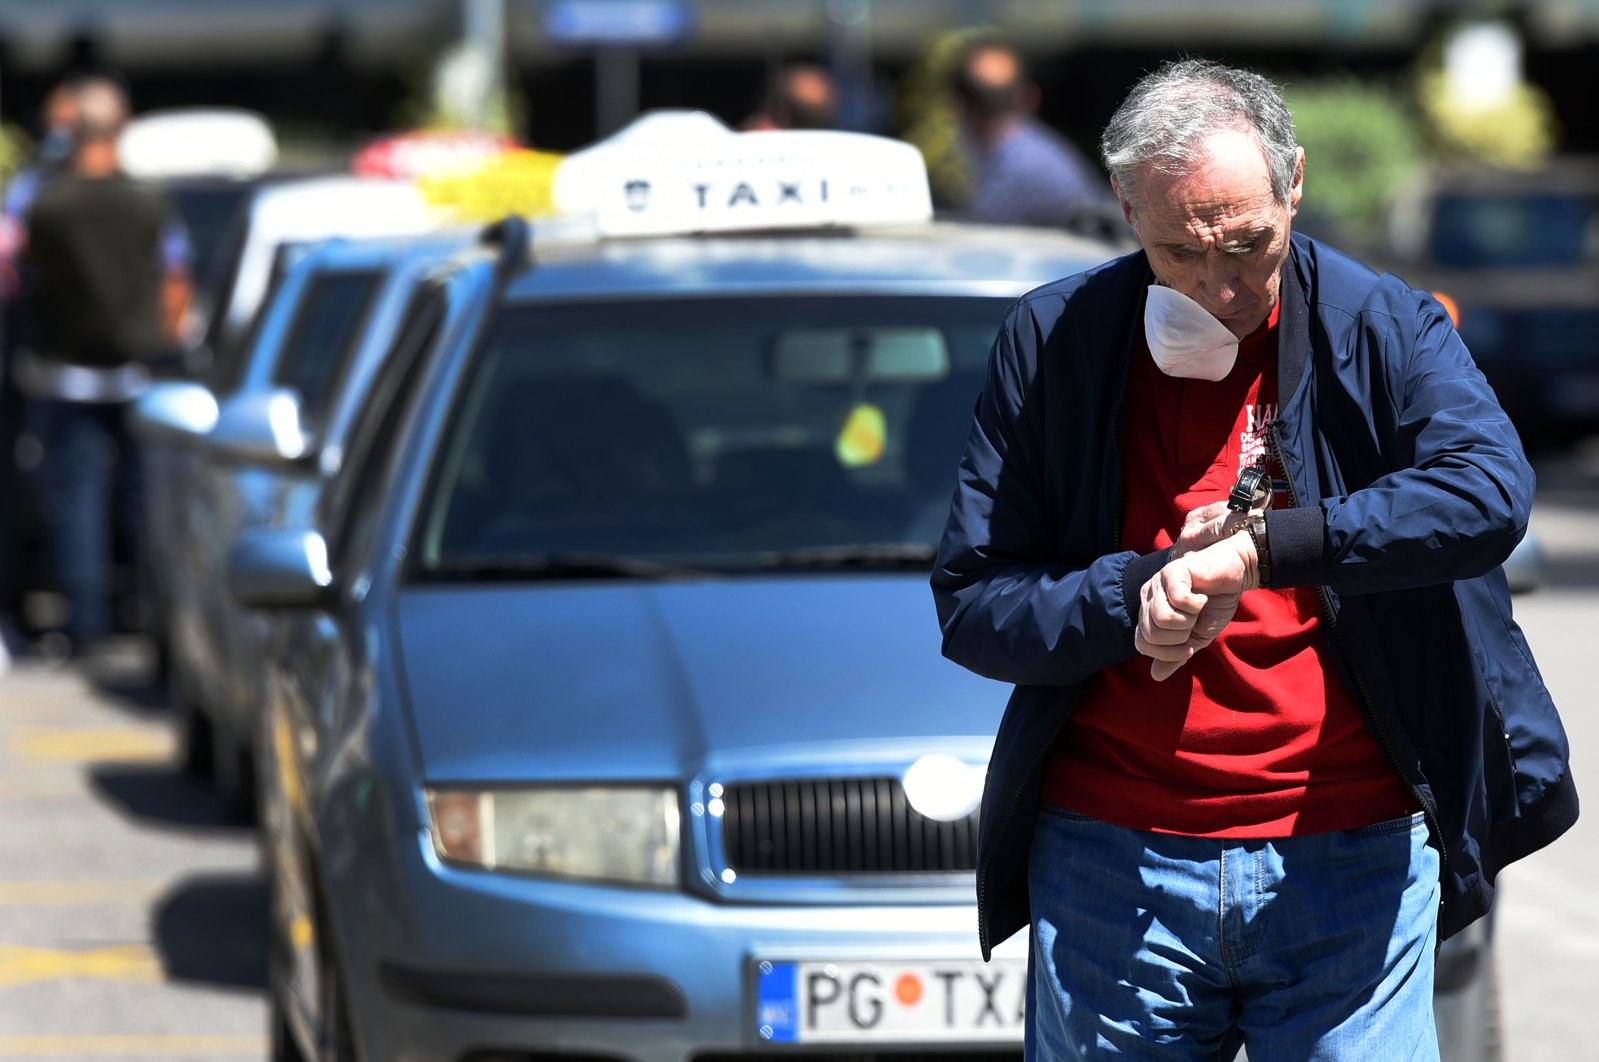 A man wearing a face mask walks past a taxi station in Podgorica, Montenegro, May 4, 2020. (EPA)